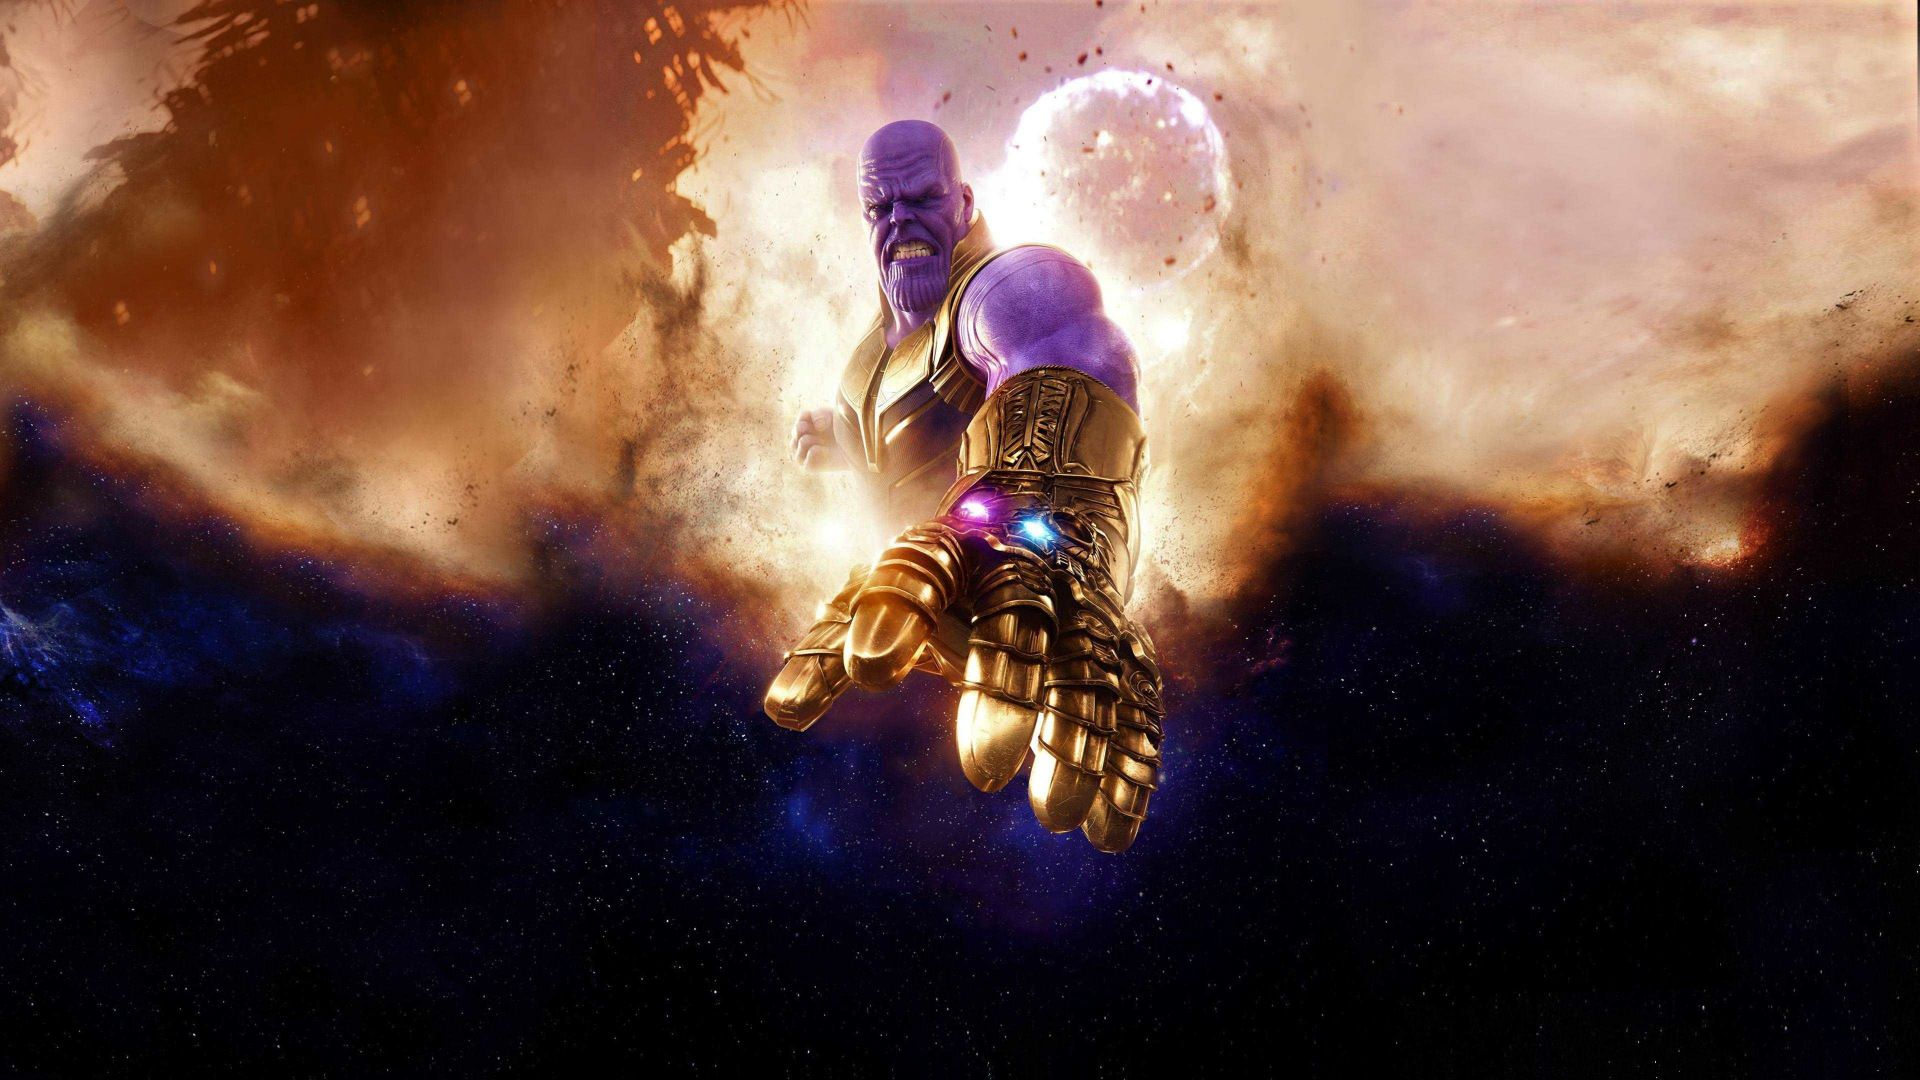 Avengers Infinity War Thanos 2018 1920x1080 Need Trendy Iphone7 Iphone7plus Case Check Out Https Ift T War Artwork Avengers Infinity War Marvel Posters